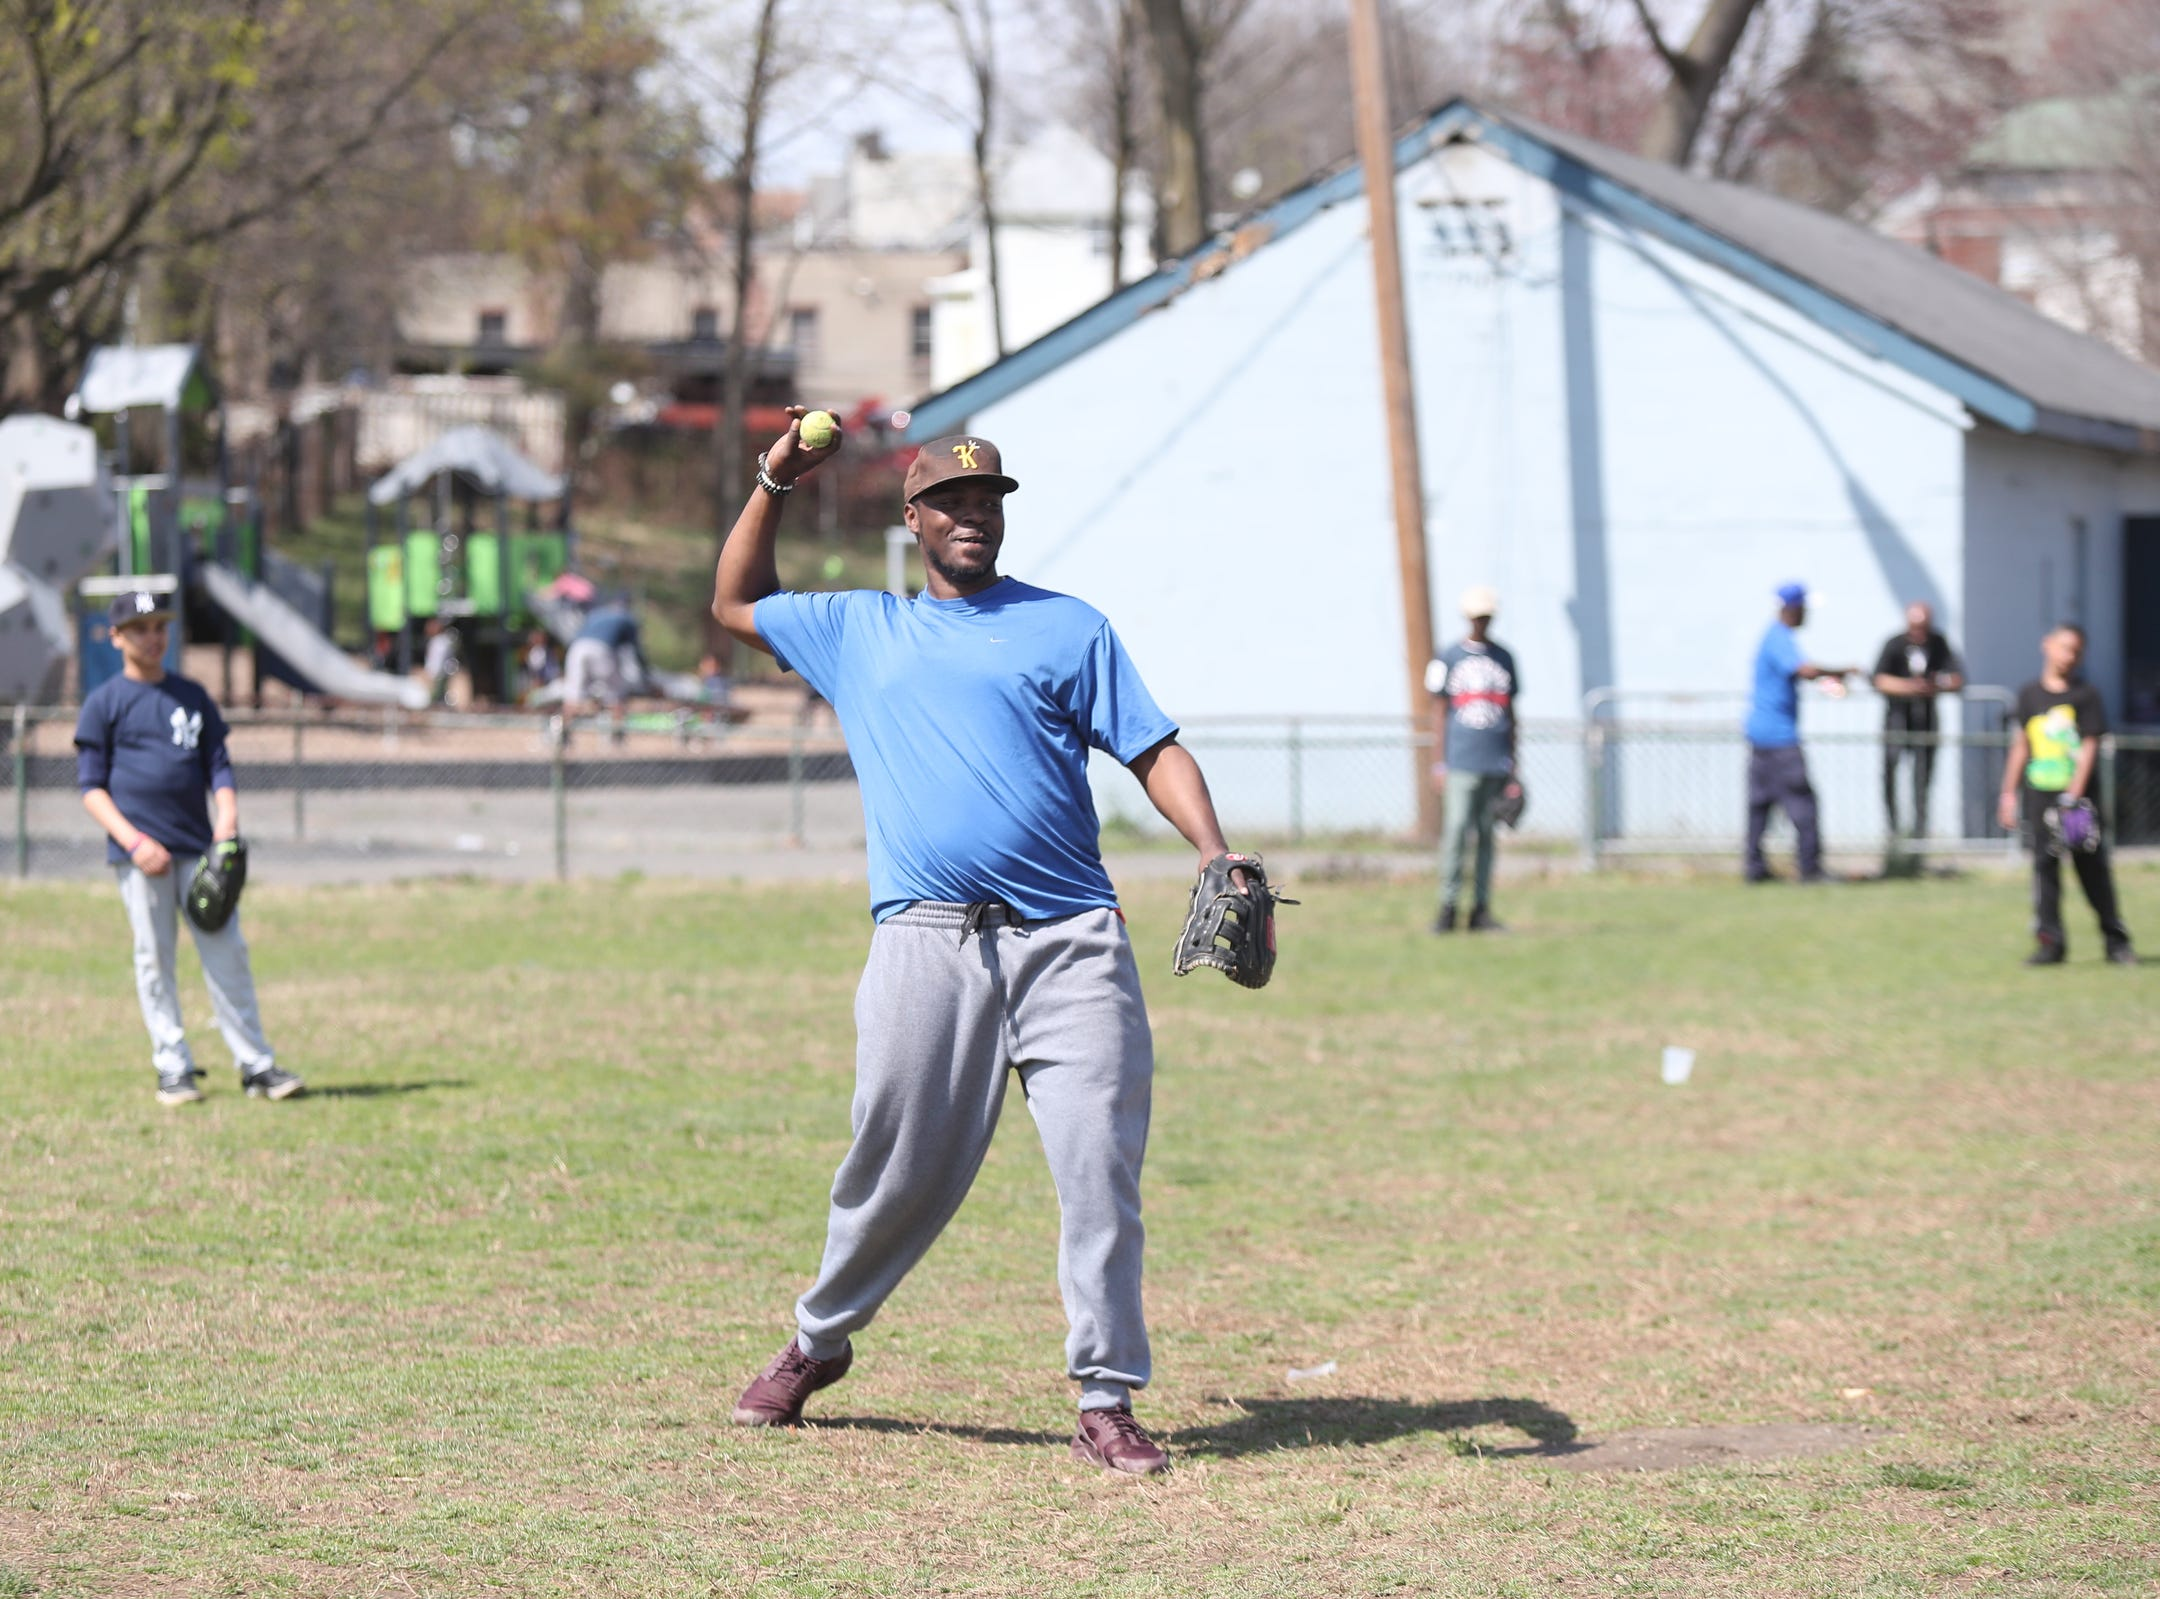 Coach Lawrence Taylor delivers a pitch during little league practice at Brush Park on Saturday, April 13, 2019 during Jackie Robinson Day in Mount Vernon.